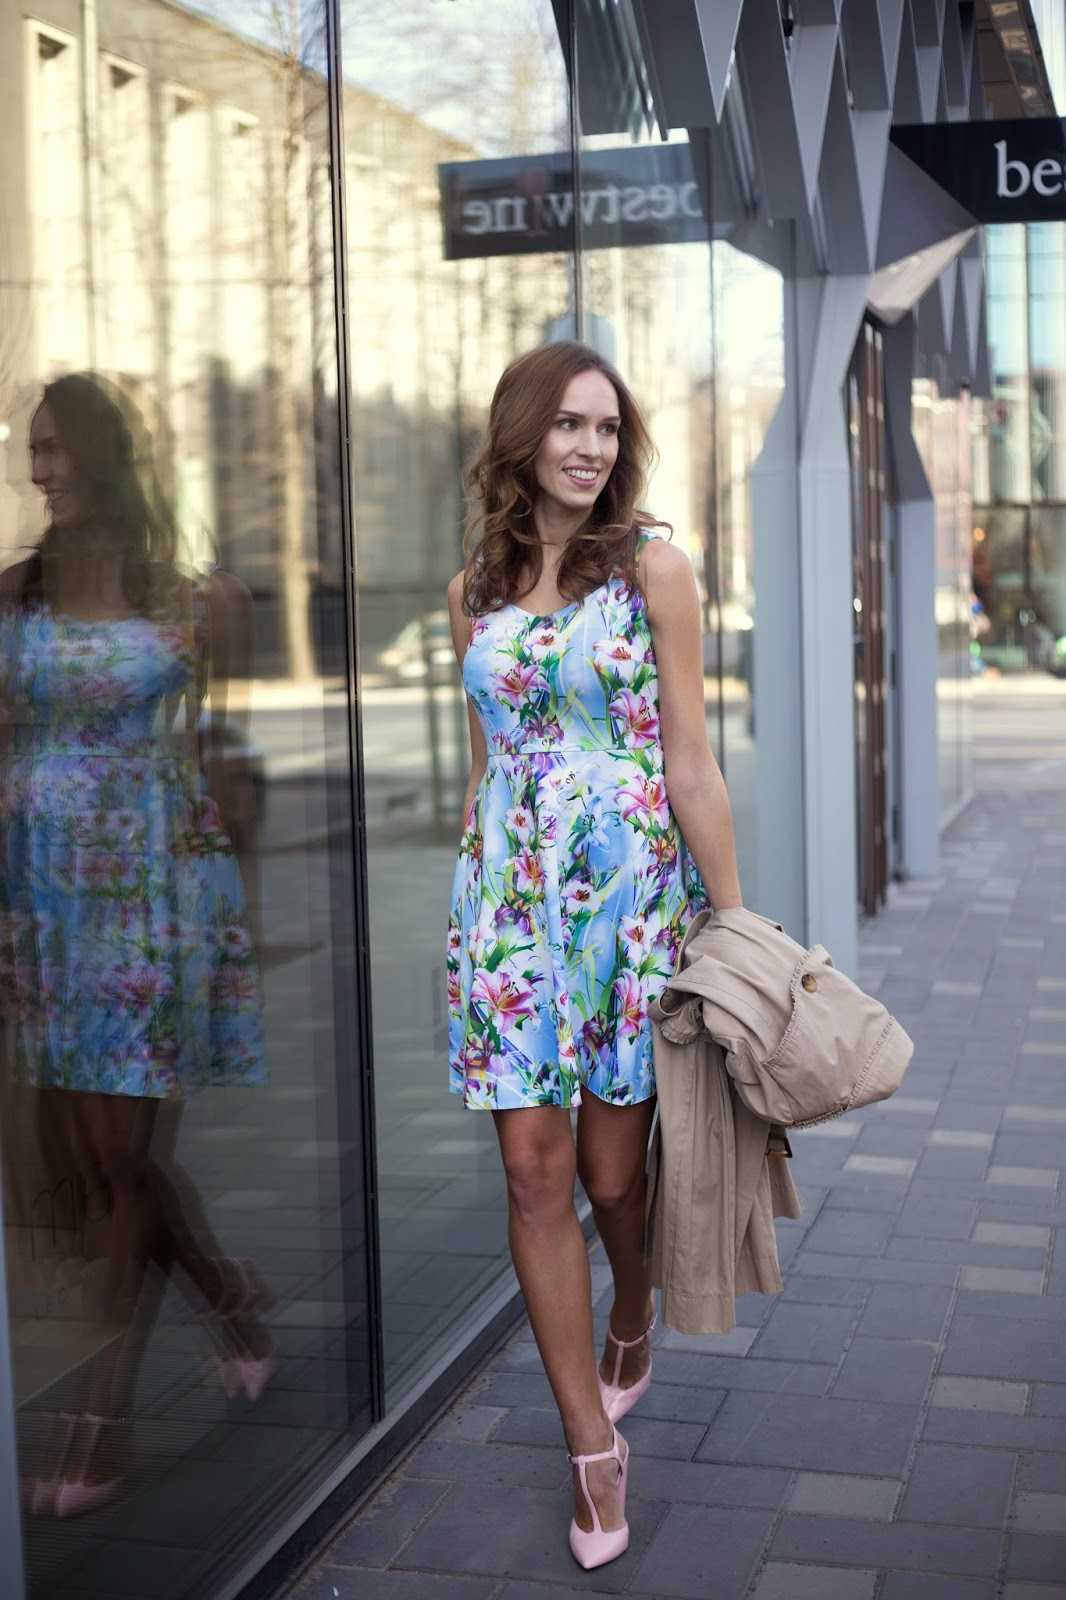 perit-muuga-estonian-fashion-designer-floral-dress